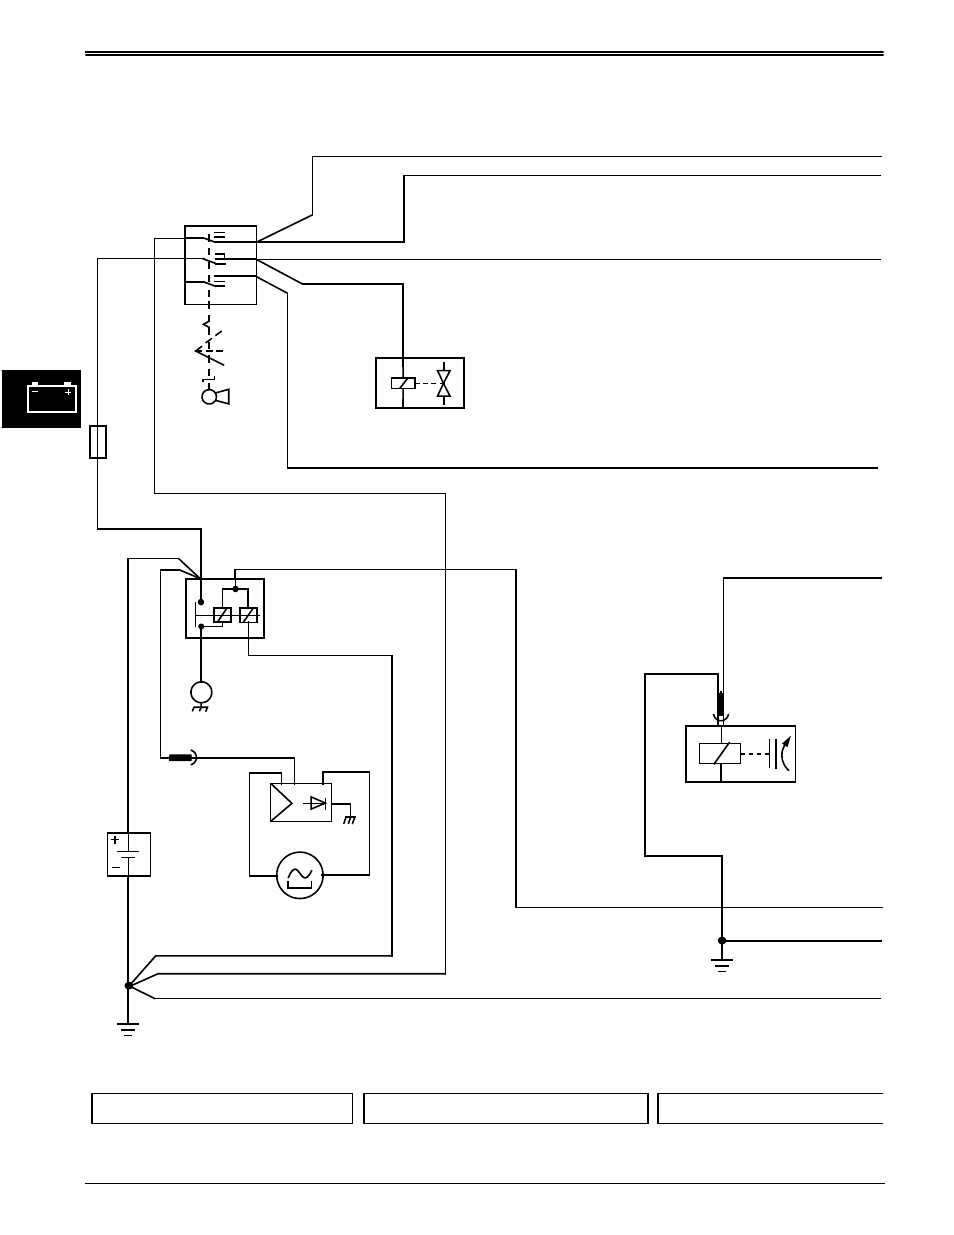 hight resolution of wiring schematics john deere stx38 user manual page 108 314john deere stx 46 wiring schematic